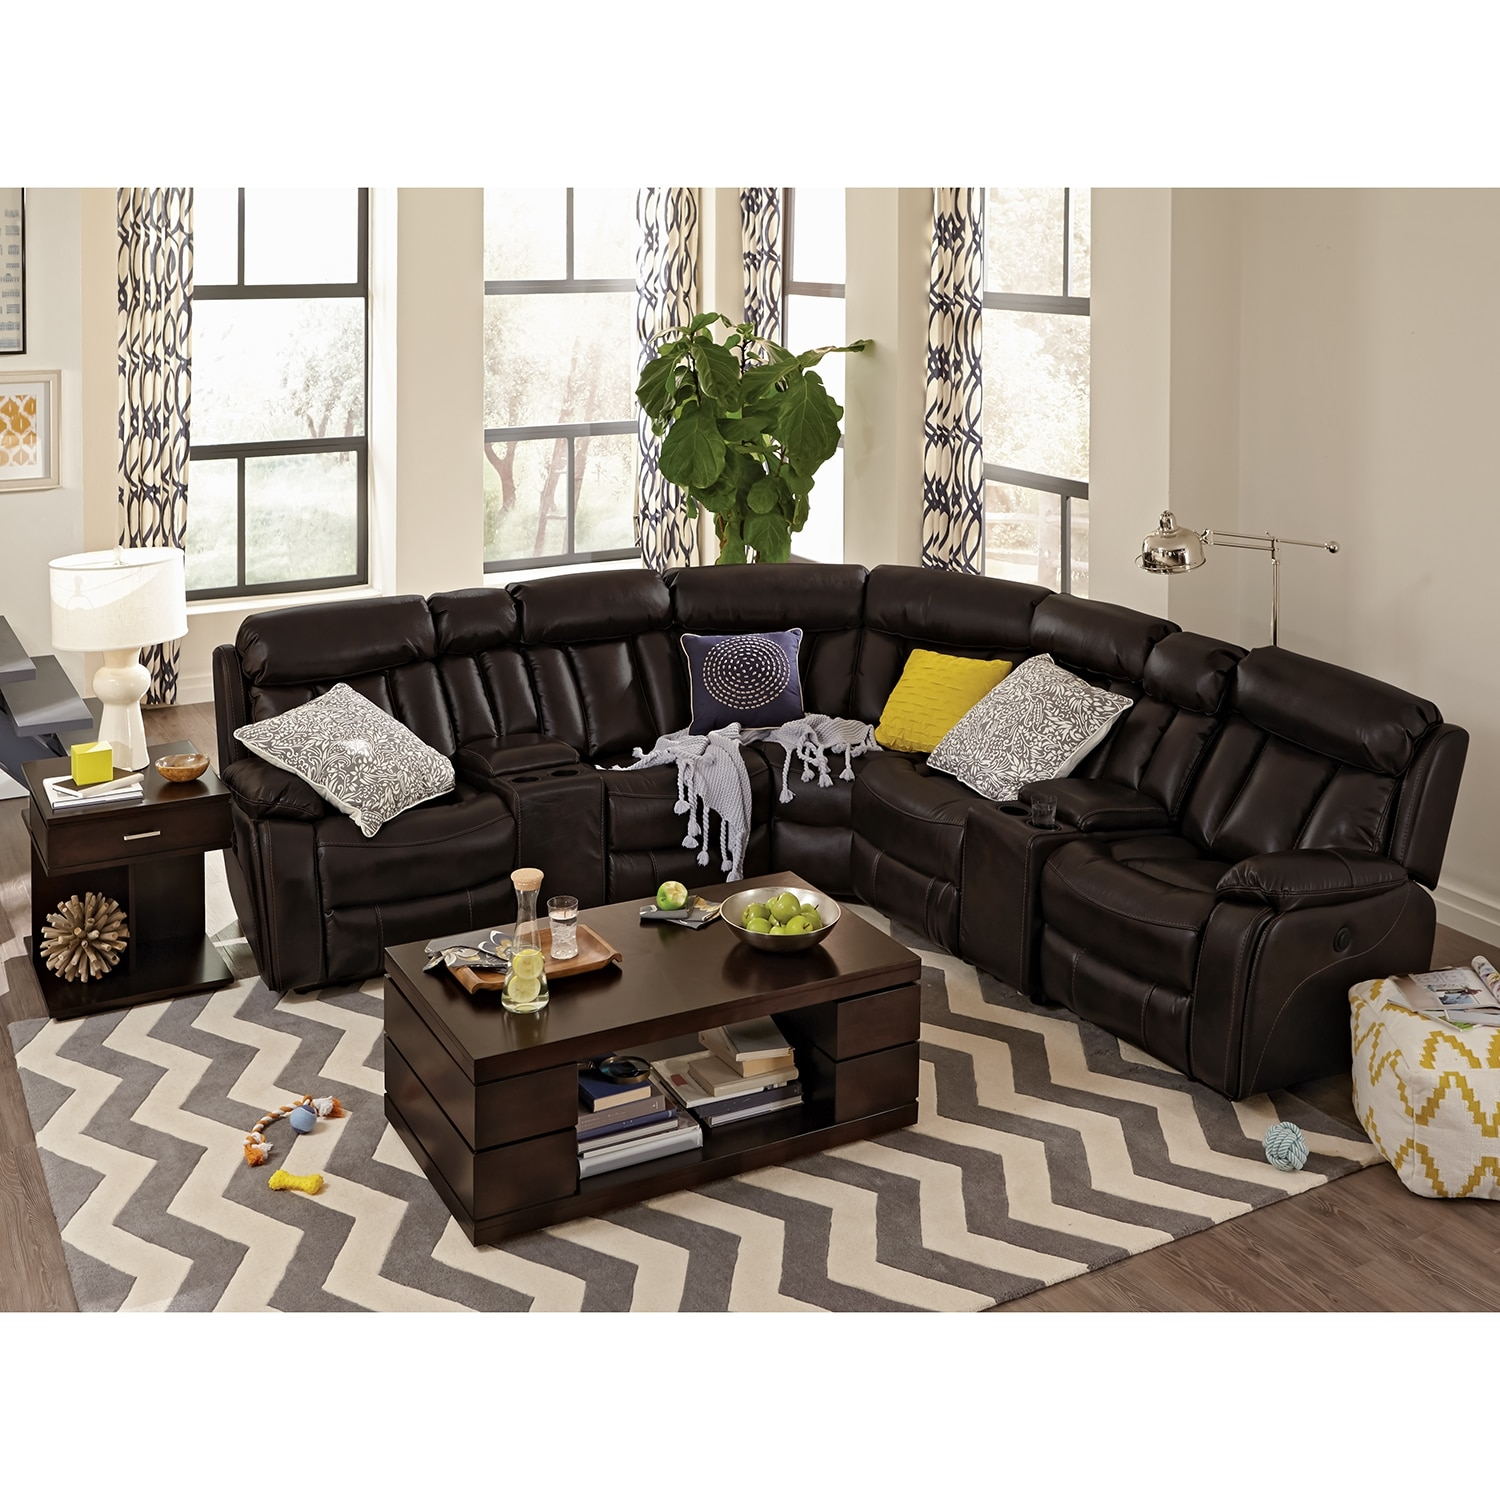 Diablo 7 Pc Power Reclining Sectional Value City Furniture